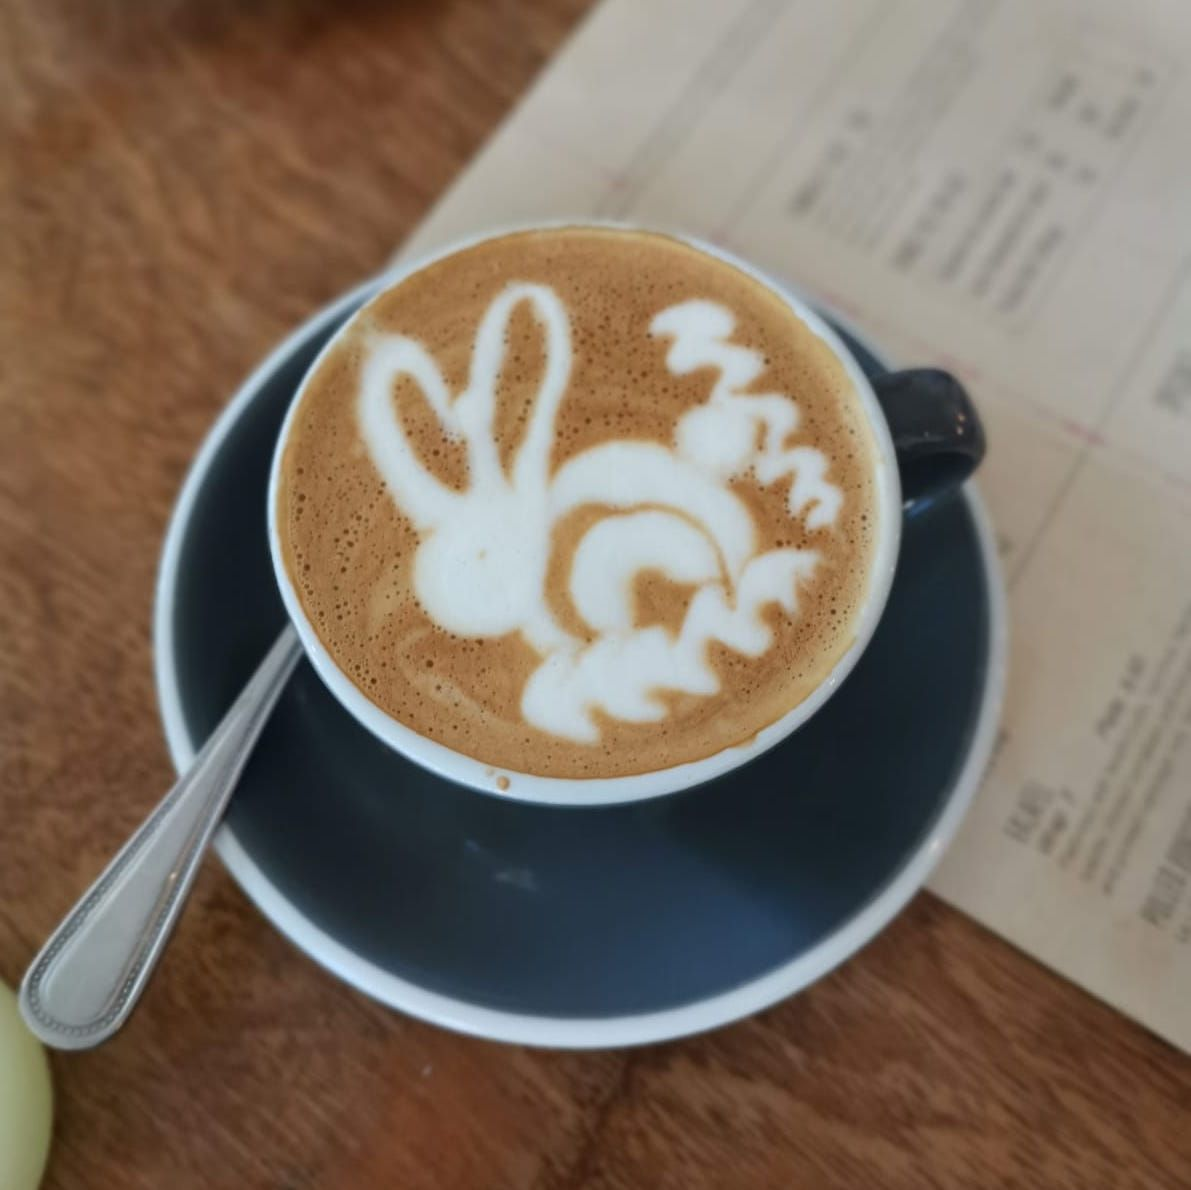 Coffee art from The Fumbally. Image: Dee Laffan.